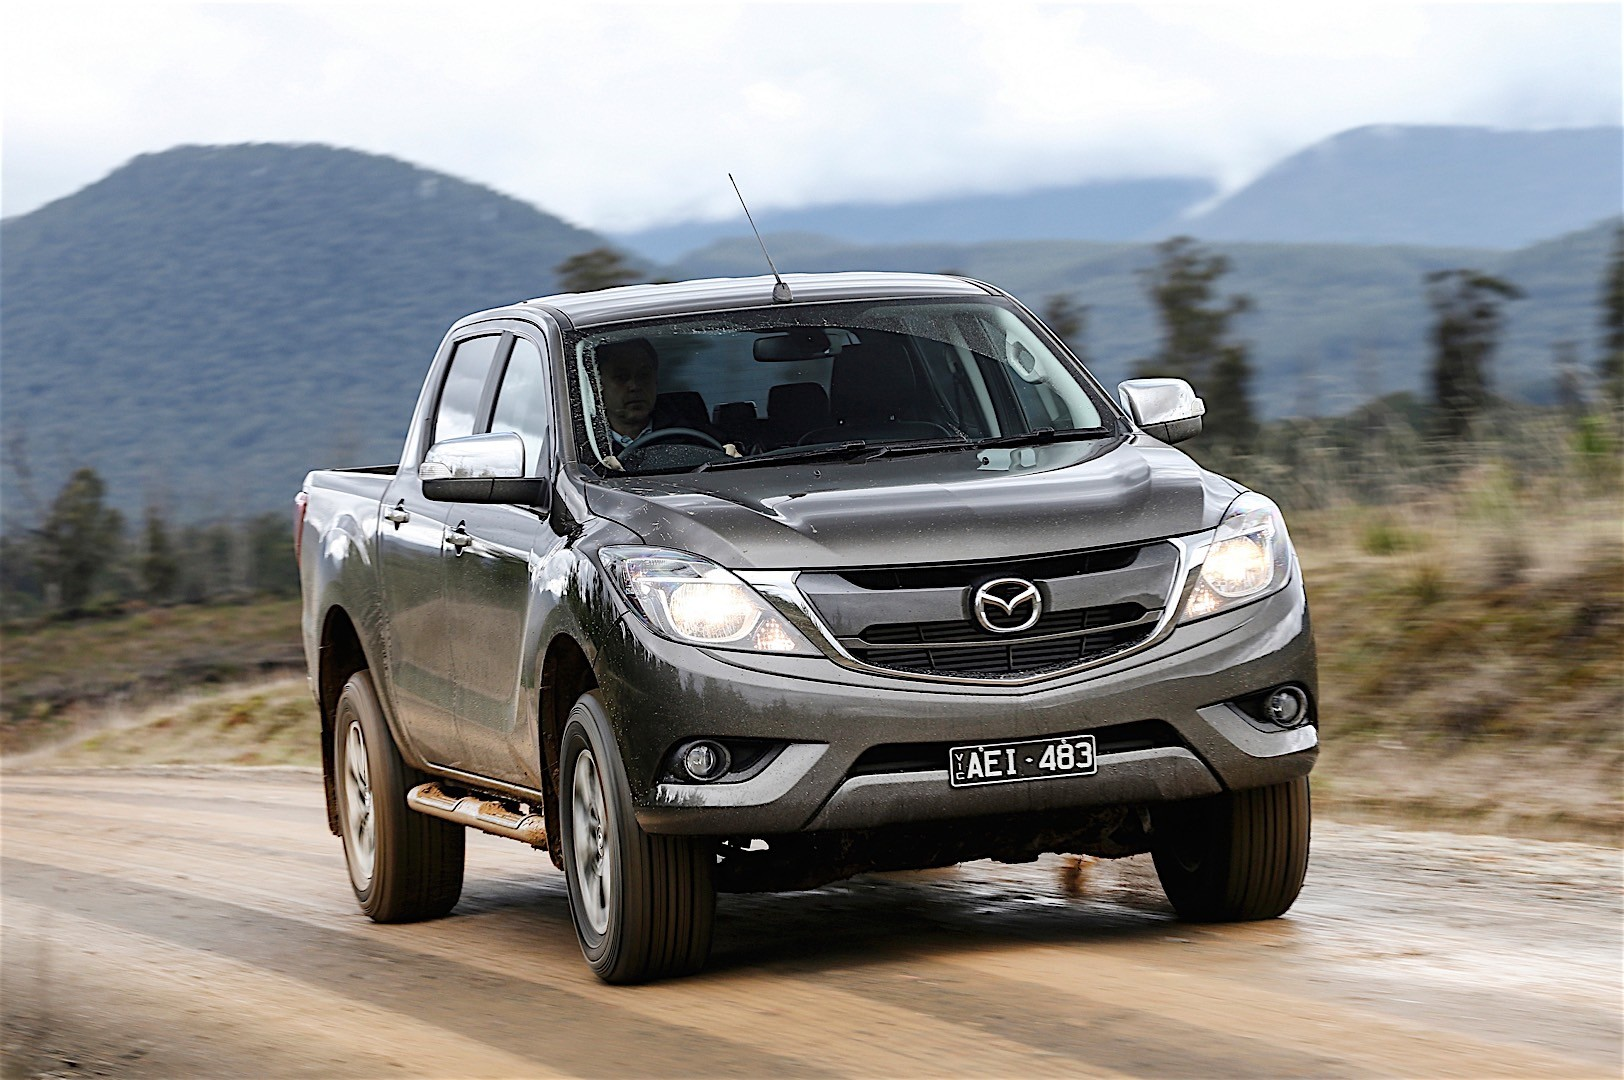 Mazda Truck 2017 Best Car Update 2019 2020 By Thestellarcafe